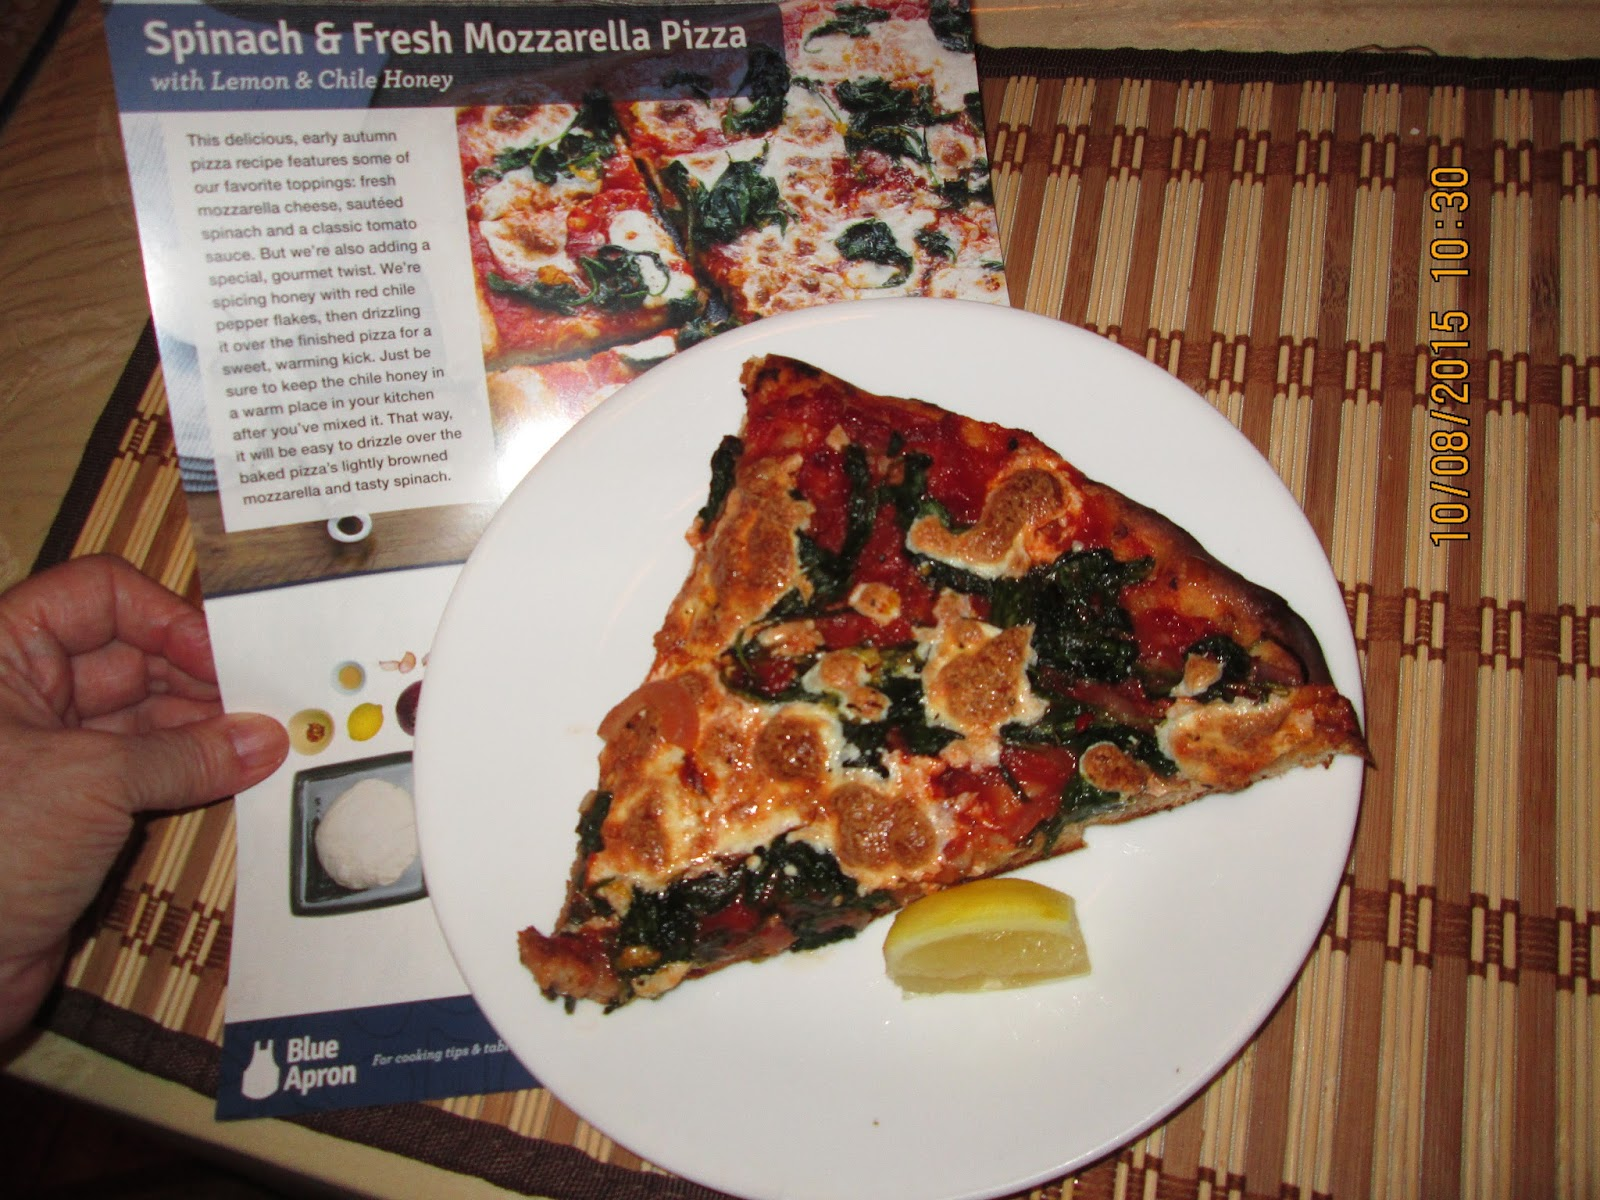 Blue apron spinach pizza - I Received My Blue Apron Box Last Thursday And Made This Scrumptious Pizza Here Is The Link To Their Site Spinach And Fresh Mozzarella Pizza With Lemon